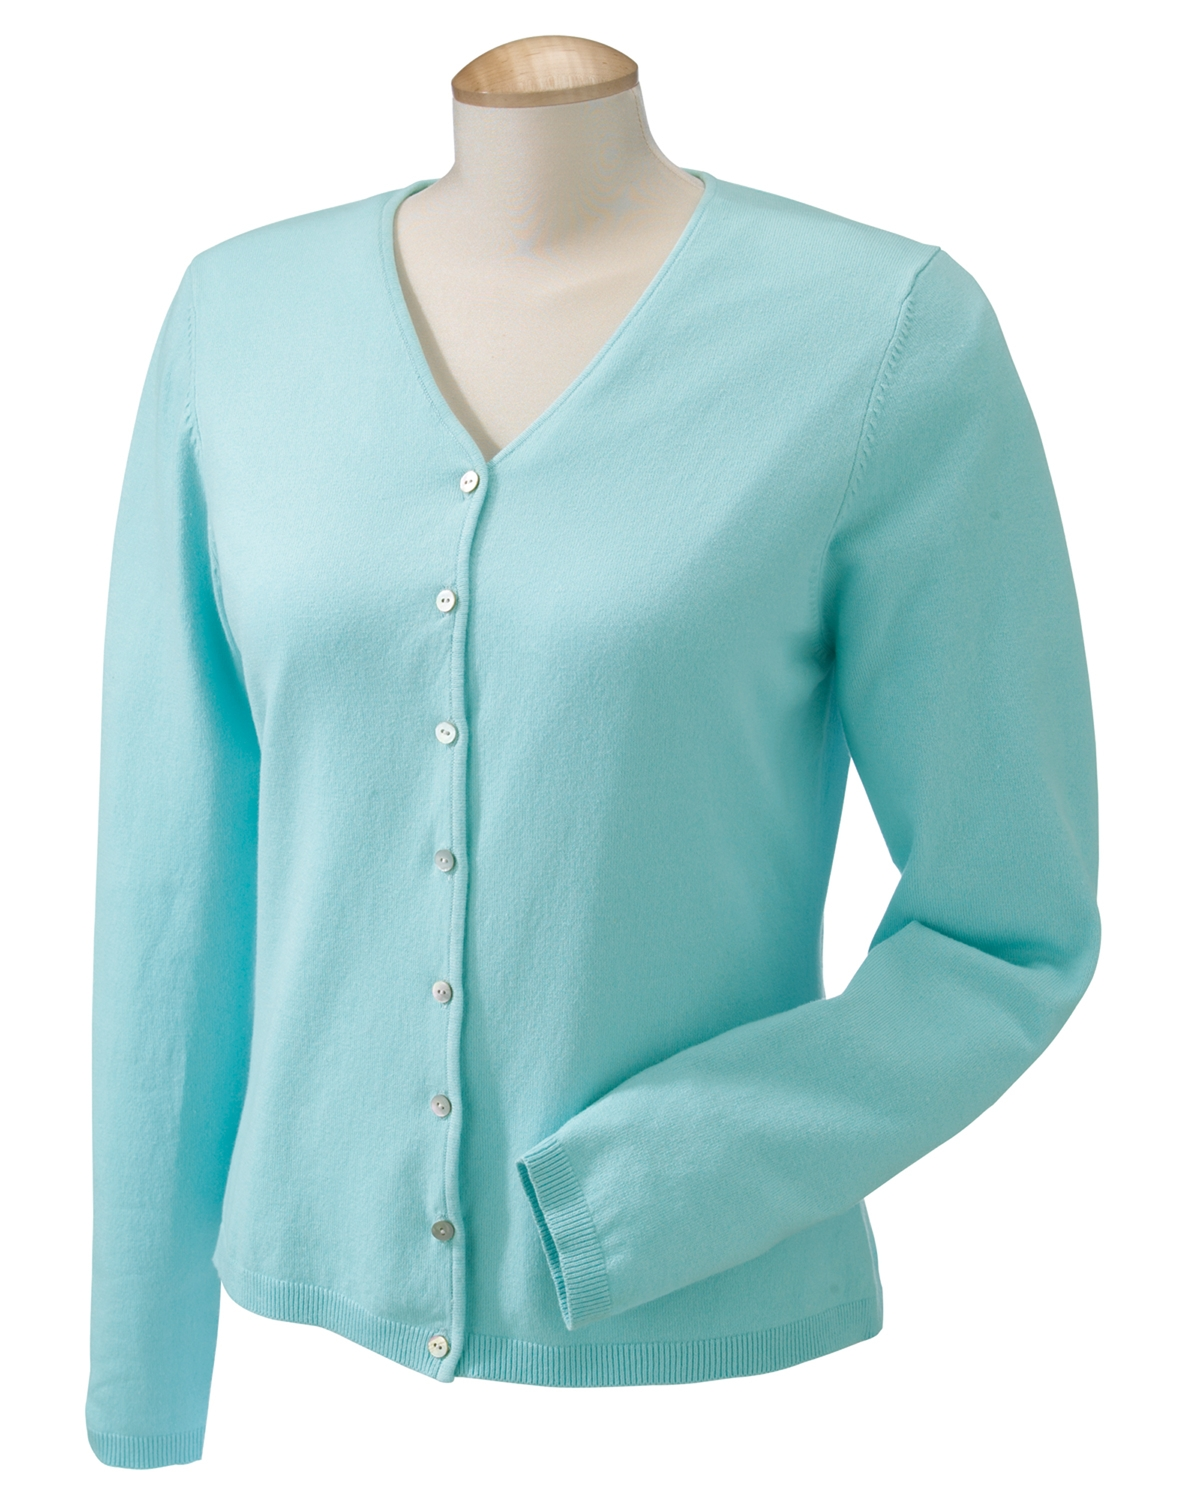 wilmergolding6jn1.gq: dressy cardigans for women. Elegant Piece of Cardigan Sweaters That Fits For Variety of Soteer Women's Lightweight Casual Lace Sleeve Open Front Cardigan. by SoTeer. $ $ 25 89 Prime. FREE Shipping on eligible orders. Some sizes/colors are Prime eligible. 5 out of 5 stars 1.